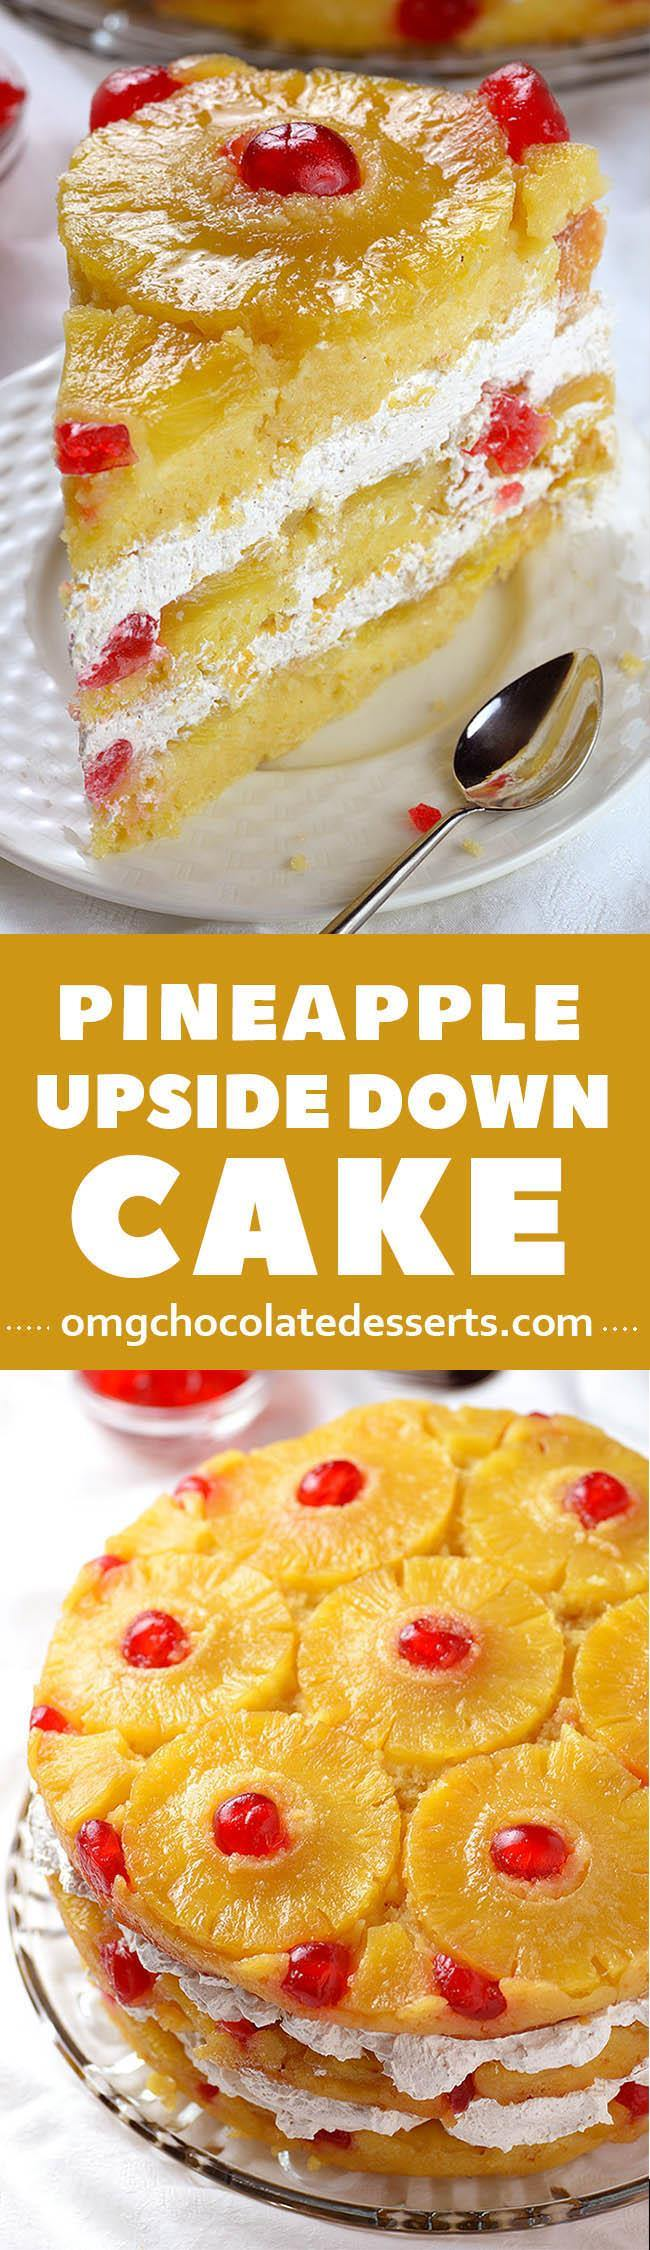 The Best Pineapple Upside-Down Cake – So soft, moist, and really is The Best!! A cheery, happy cake that's sure to put a smile on anyone's face!